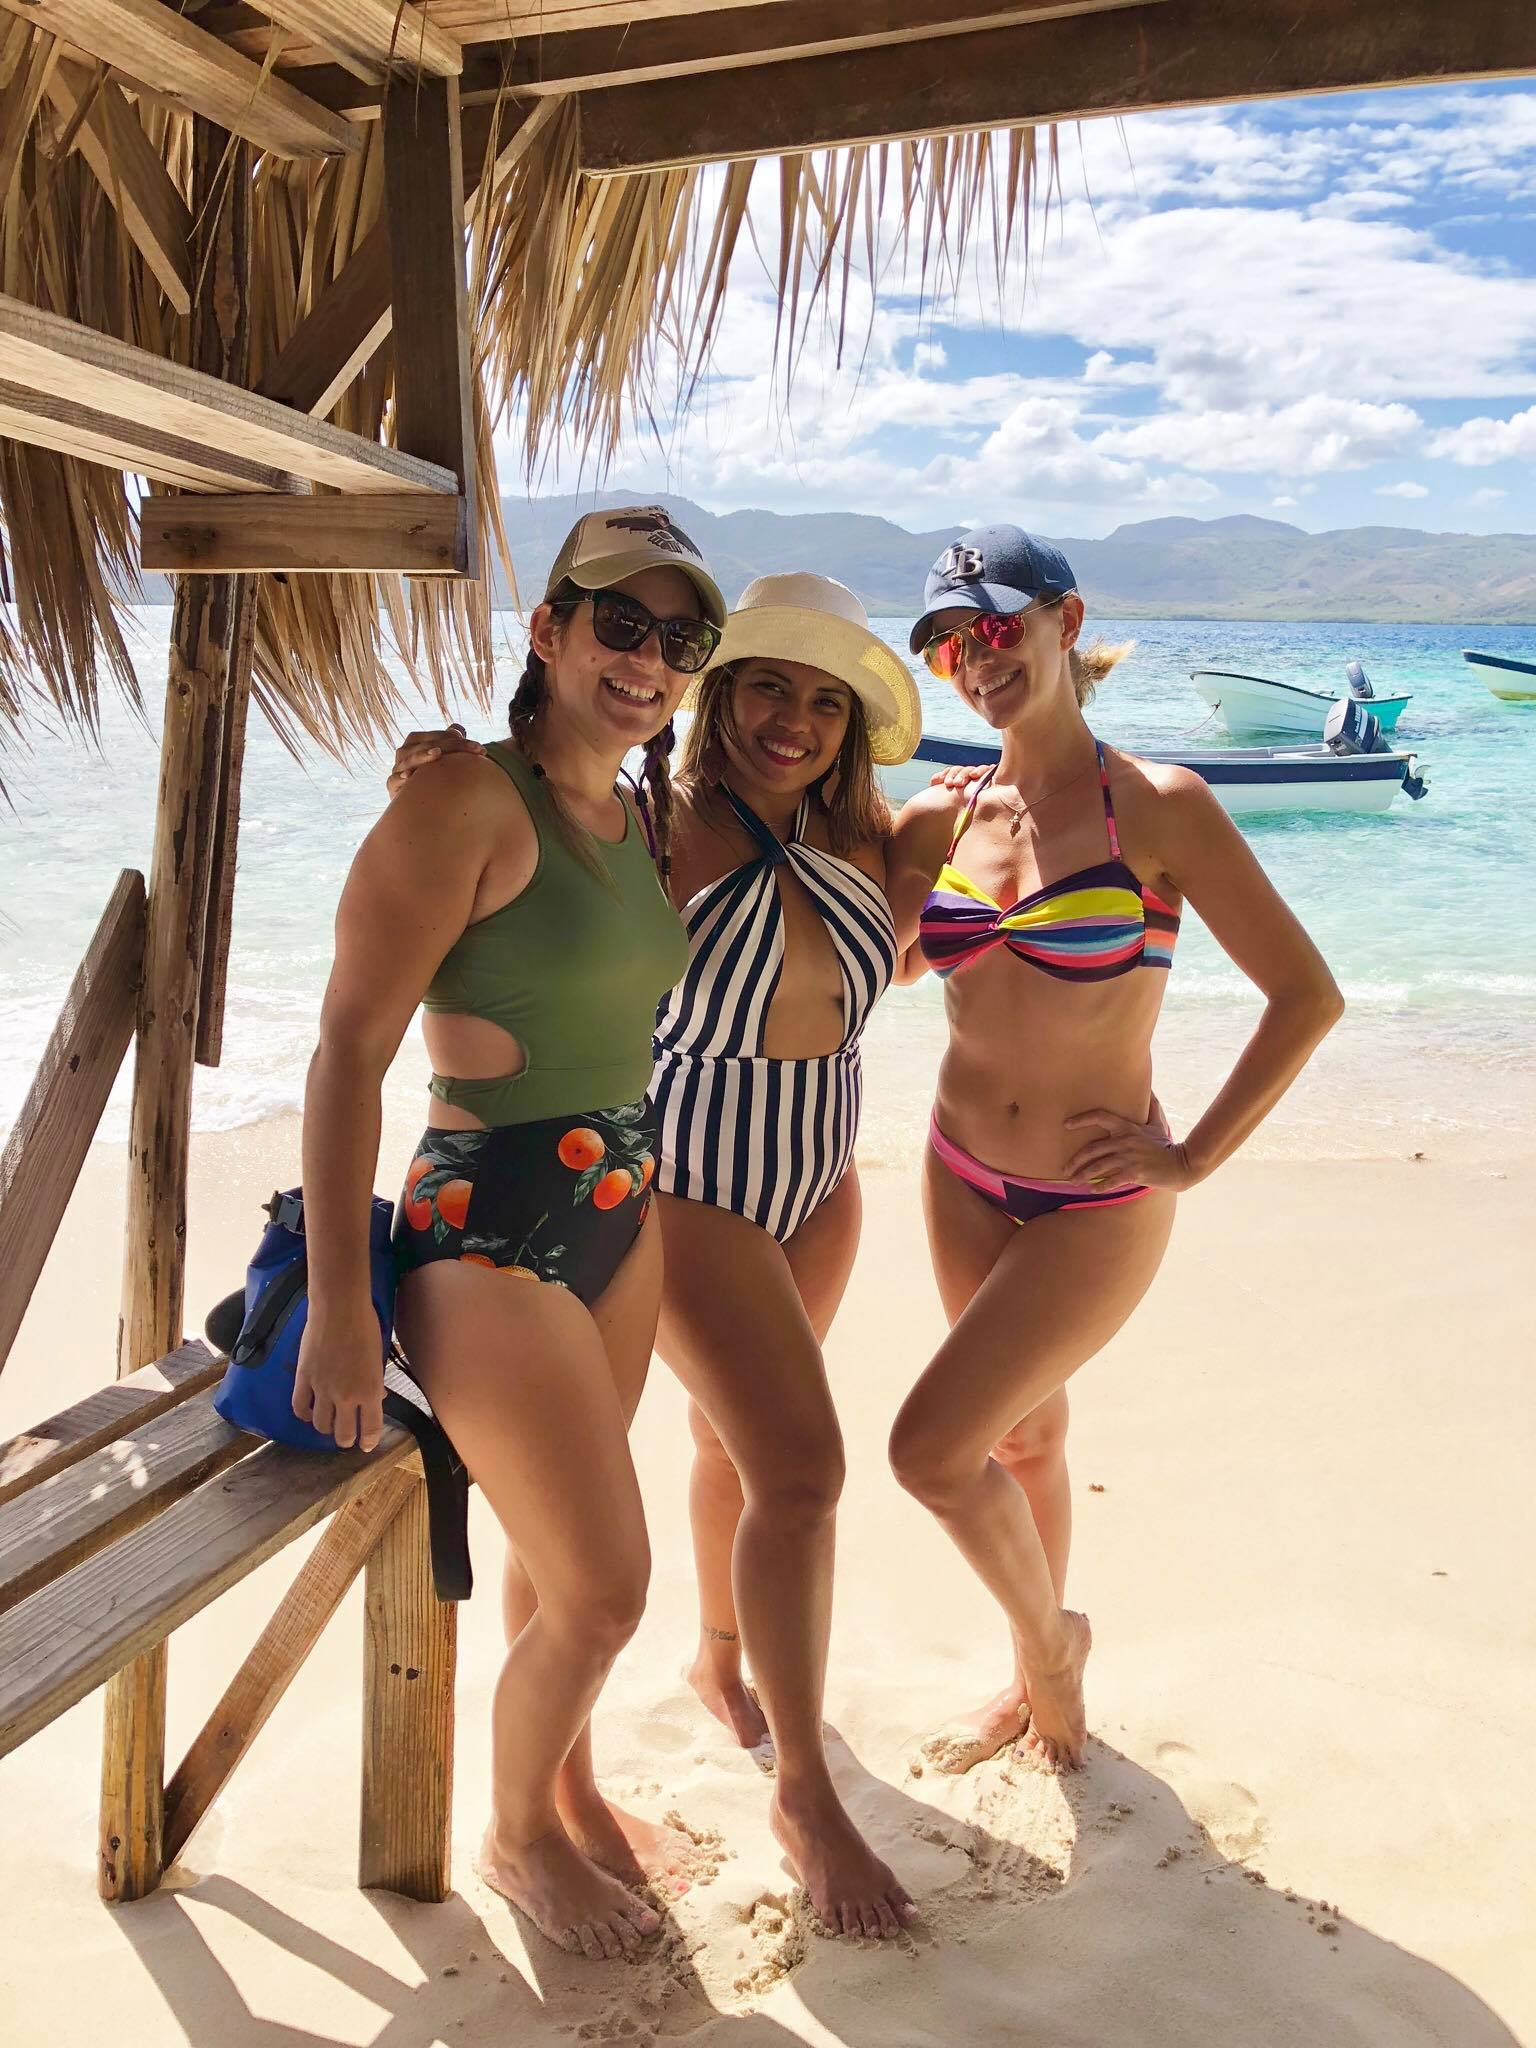 Liveaboard Life Day 256: Private Boat Trip to Paradise Island / Cayo Arenas in Puerto Plata province, Dominican Republic ⛵️